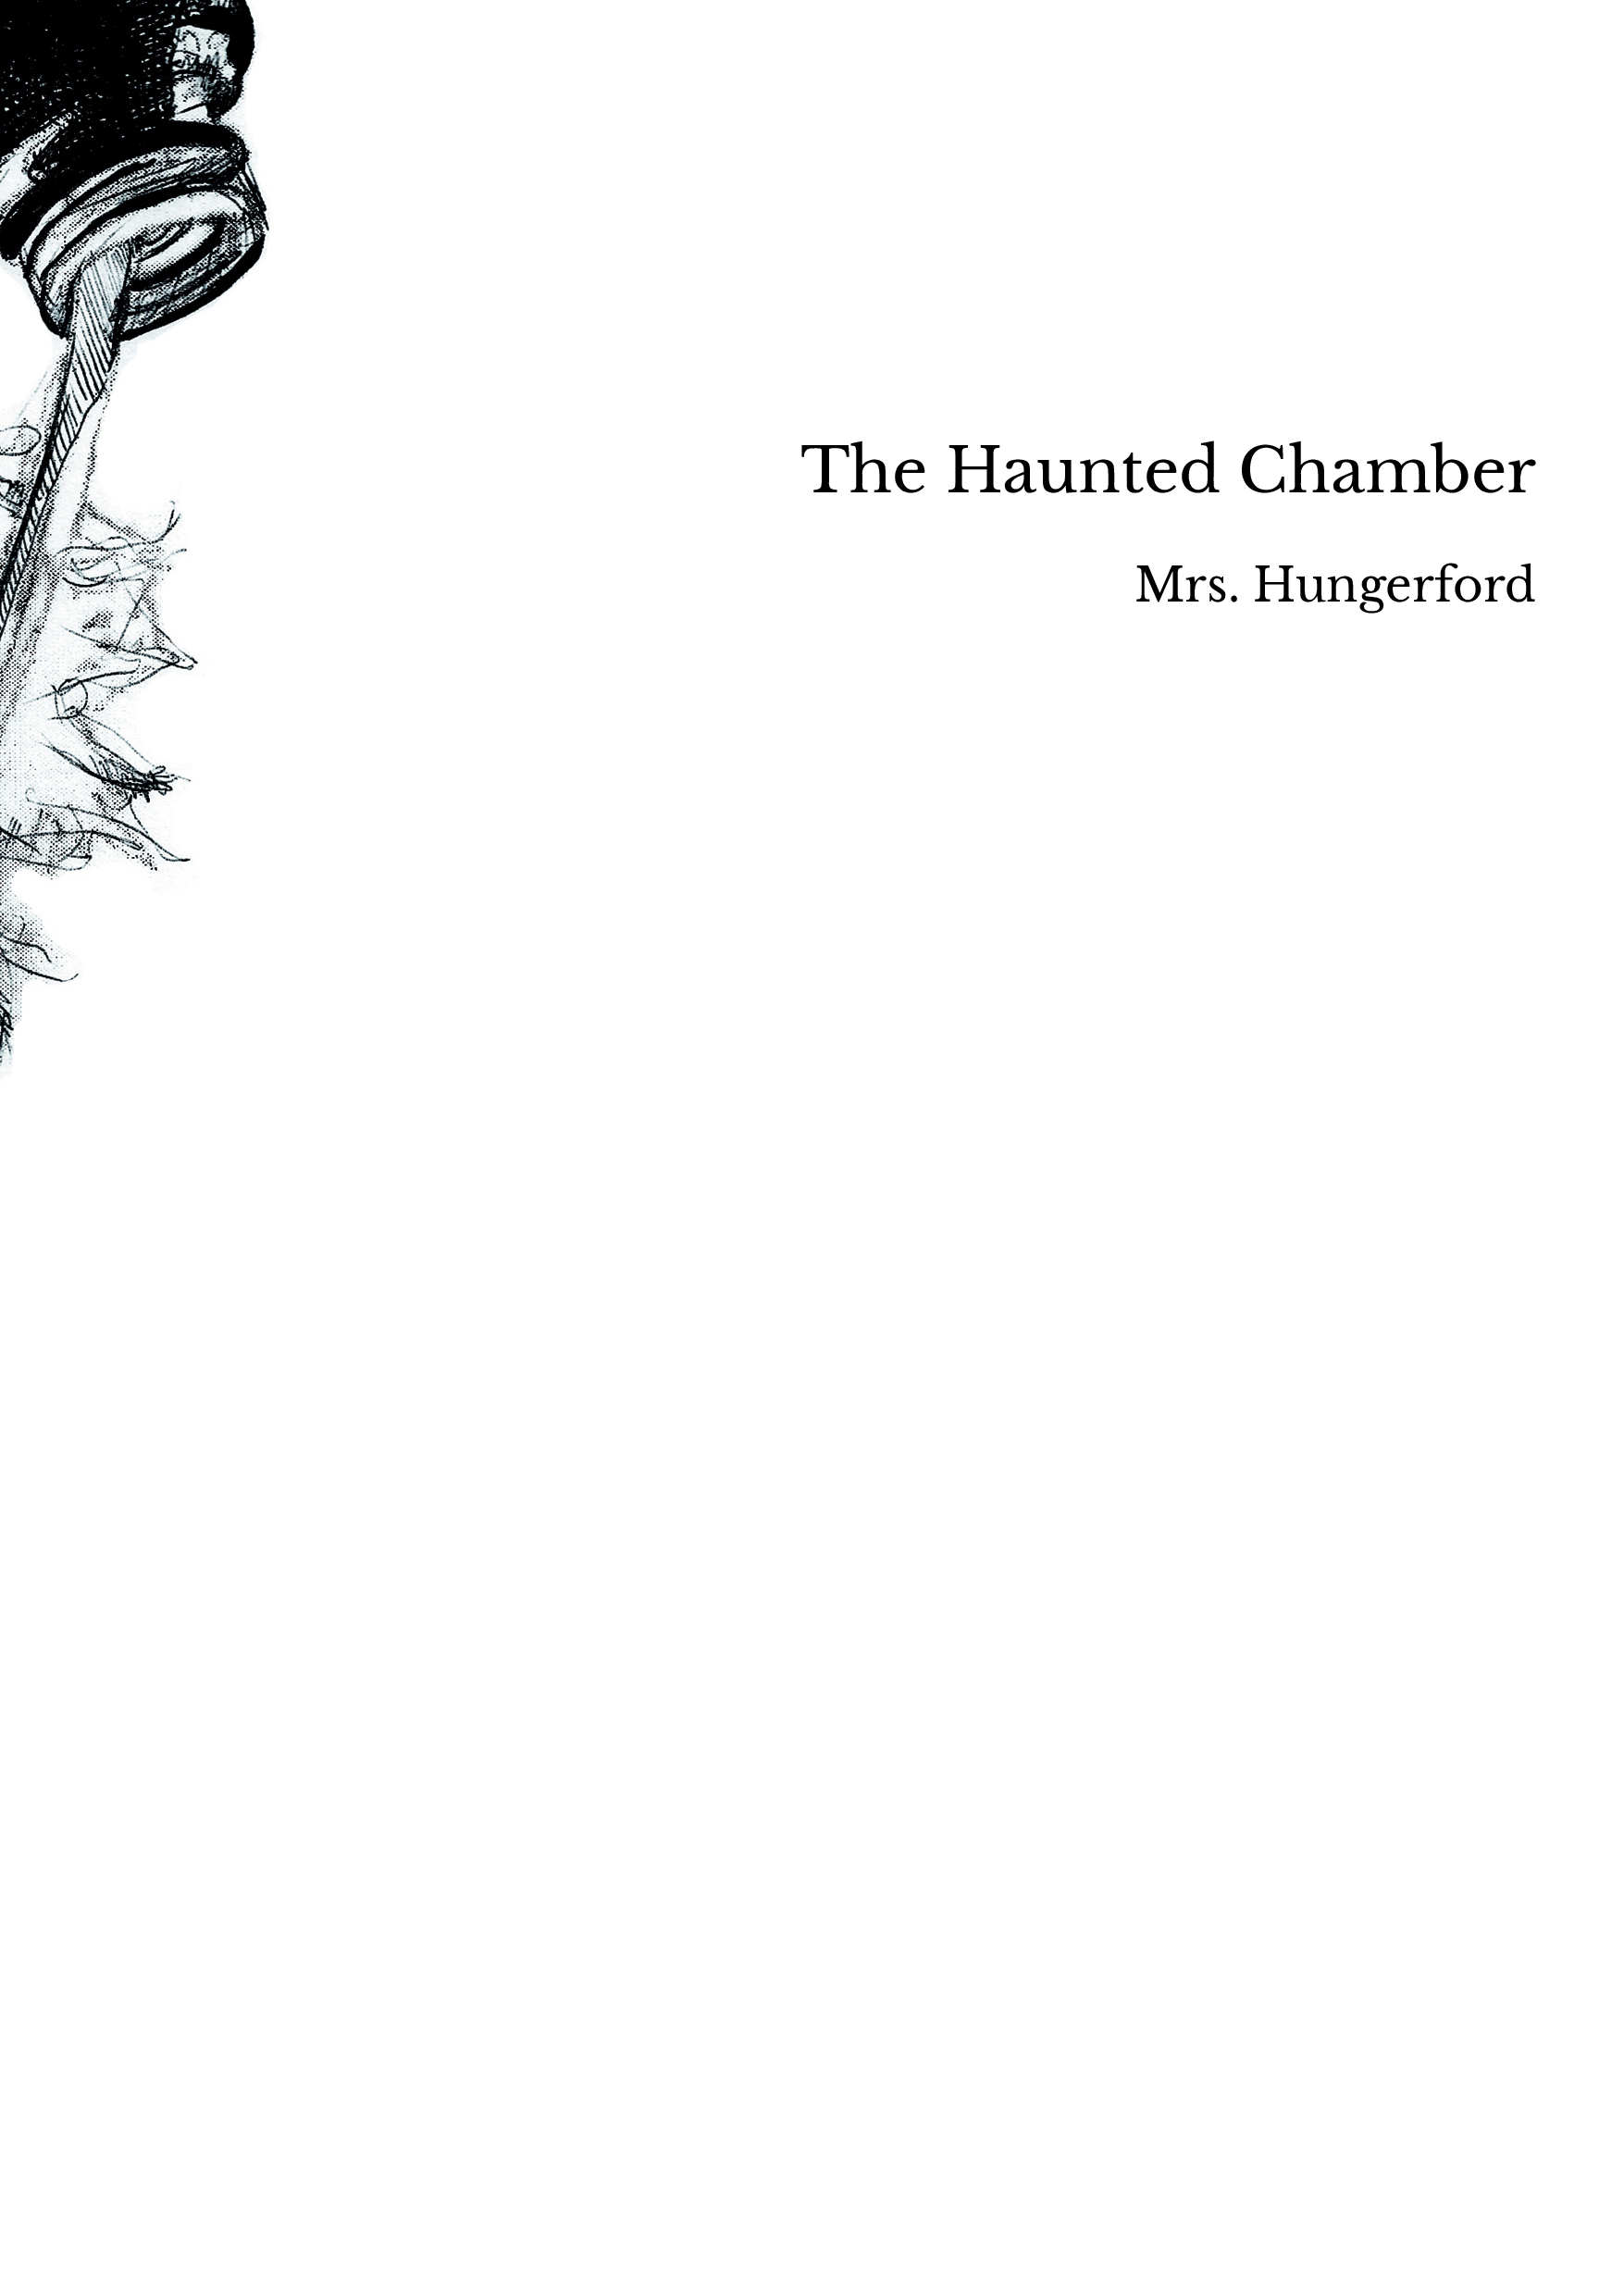 The Haunted Chamber